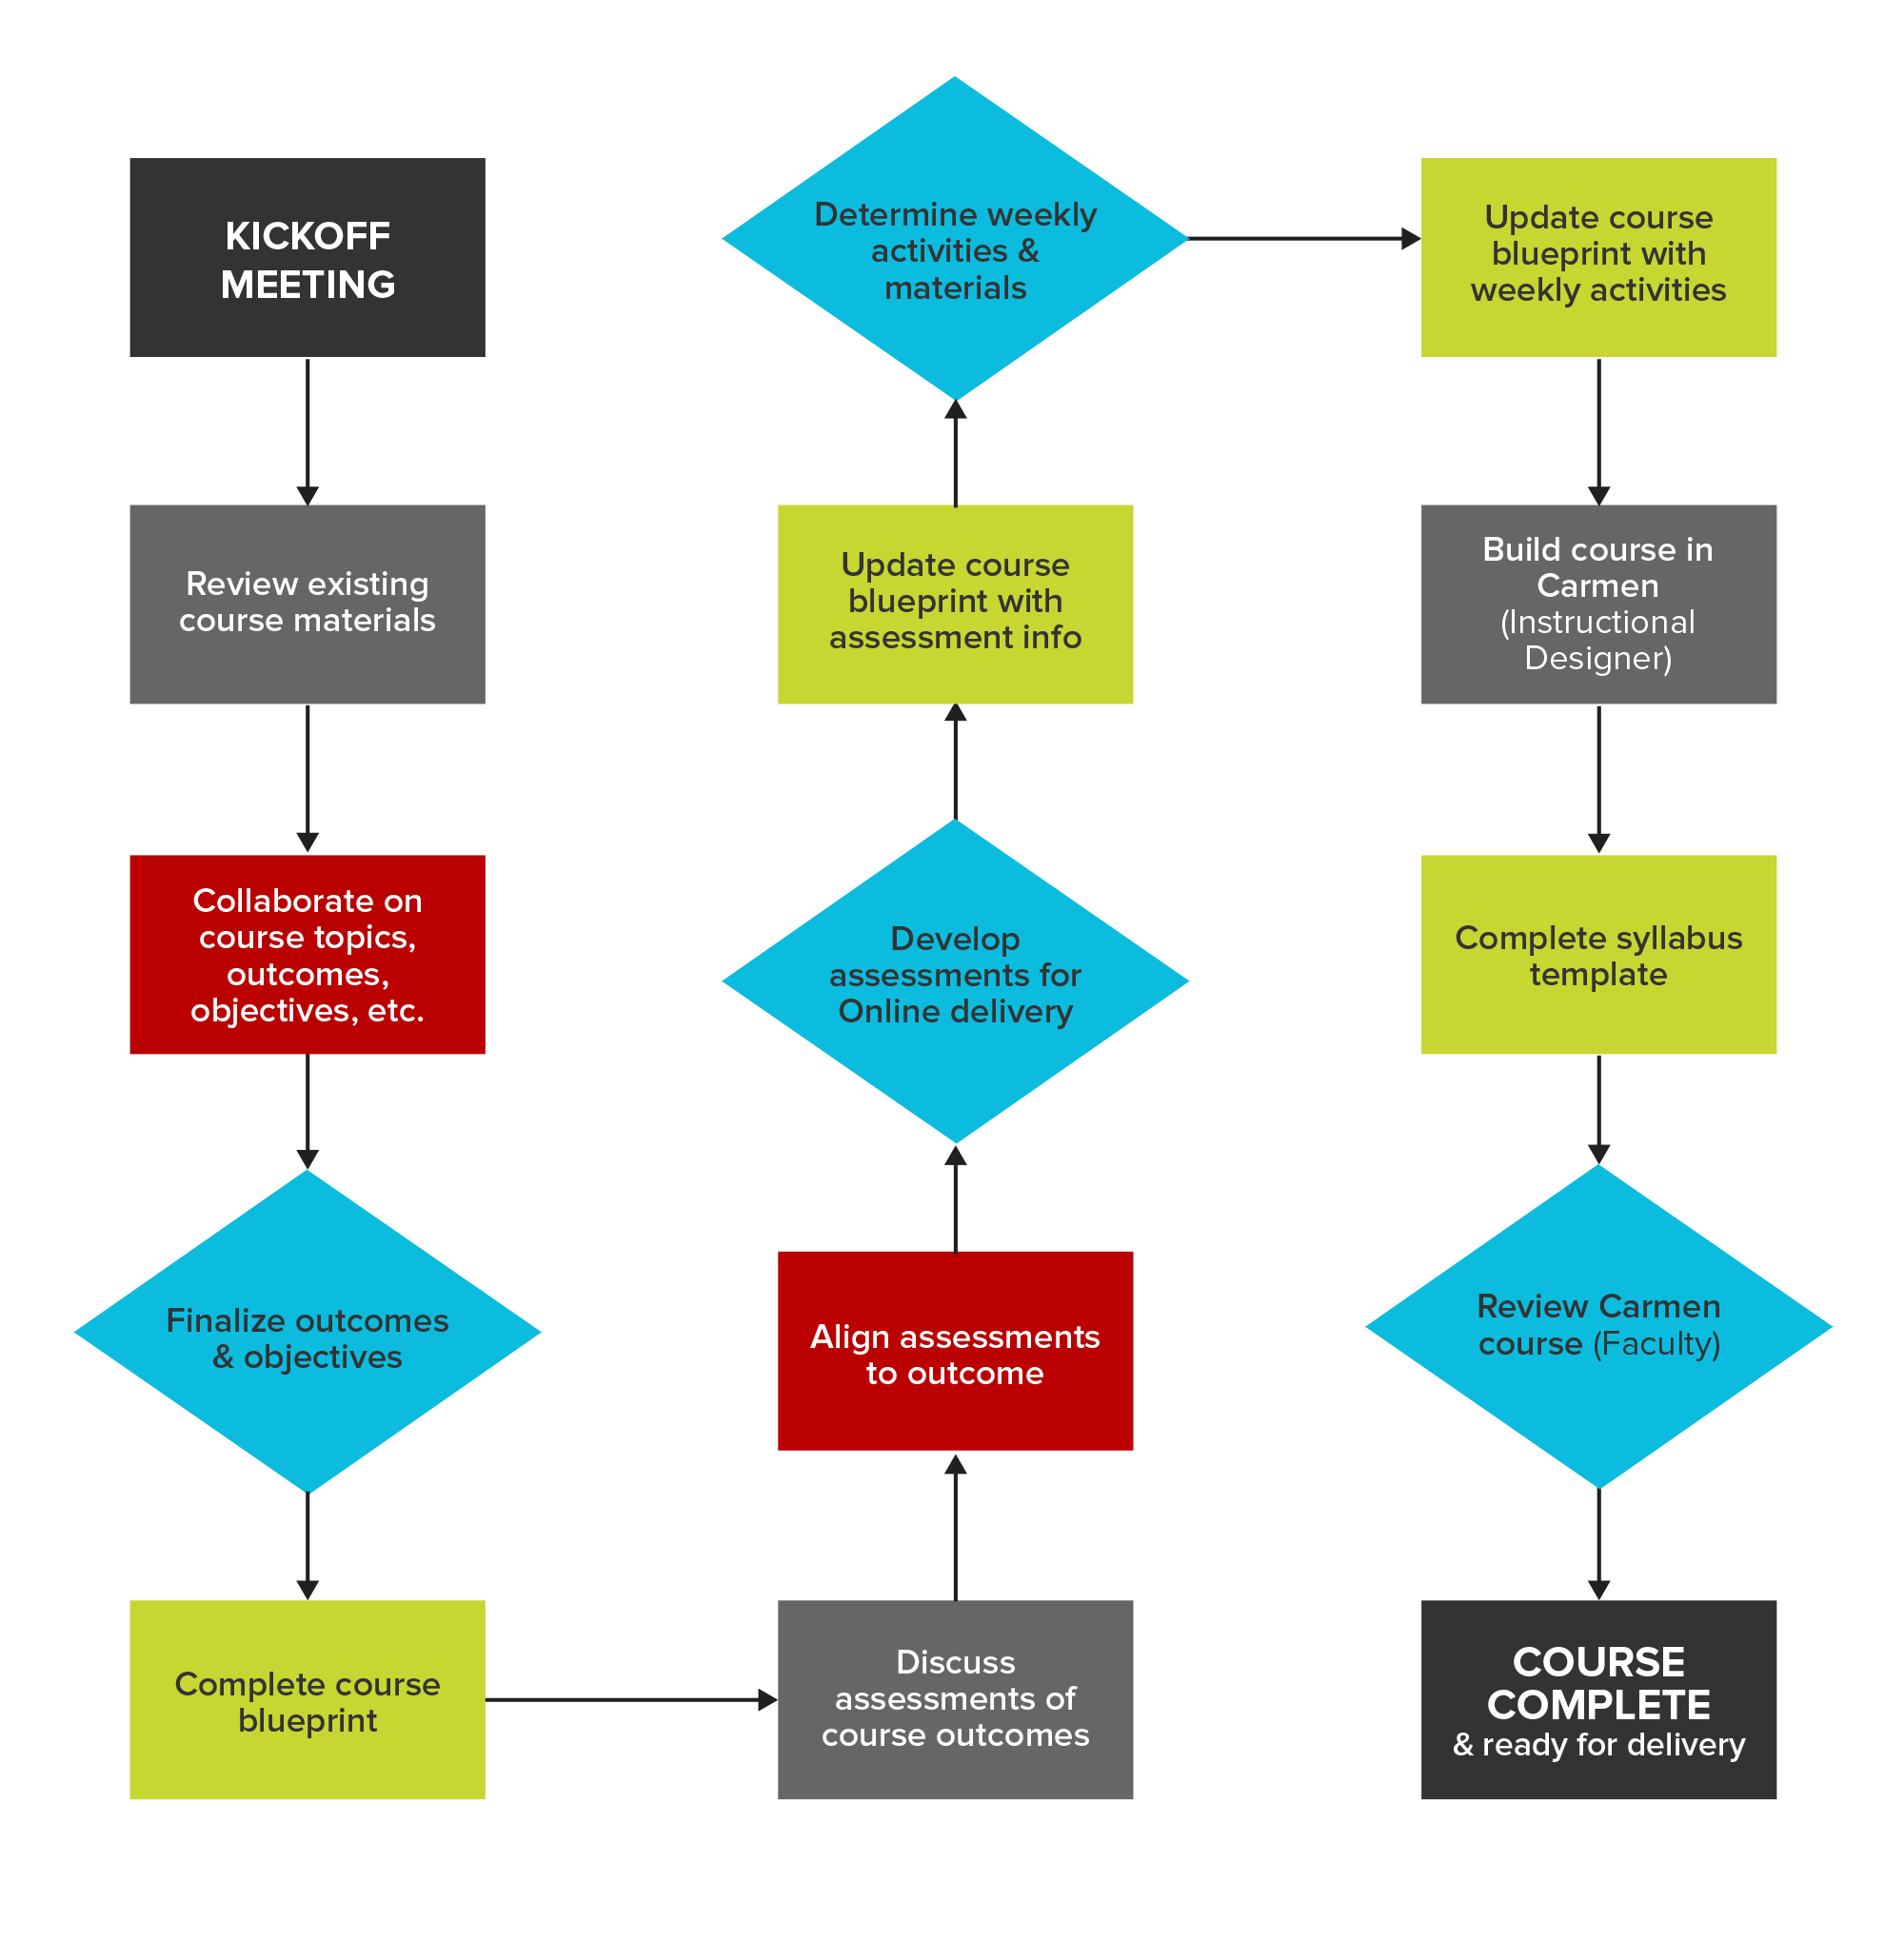 Plan your course office of distance education and elearning course development process flow click to enlarge malvernweather Image collections